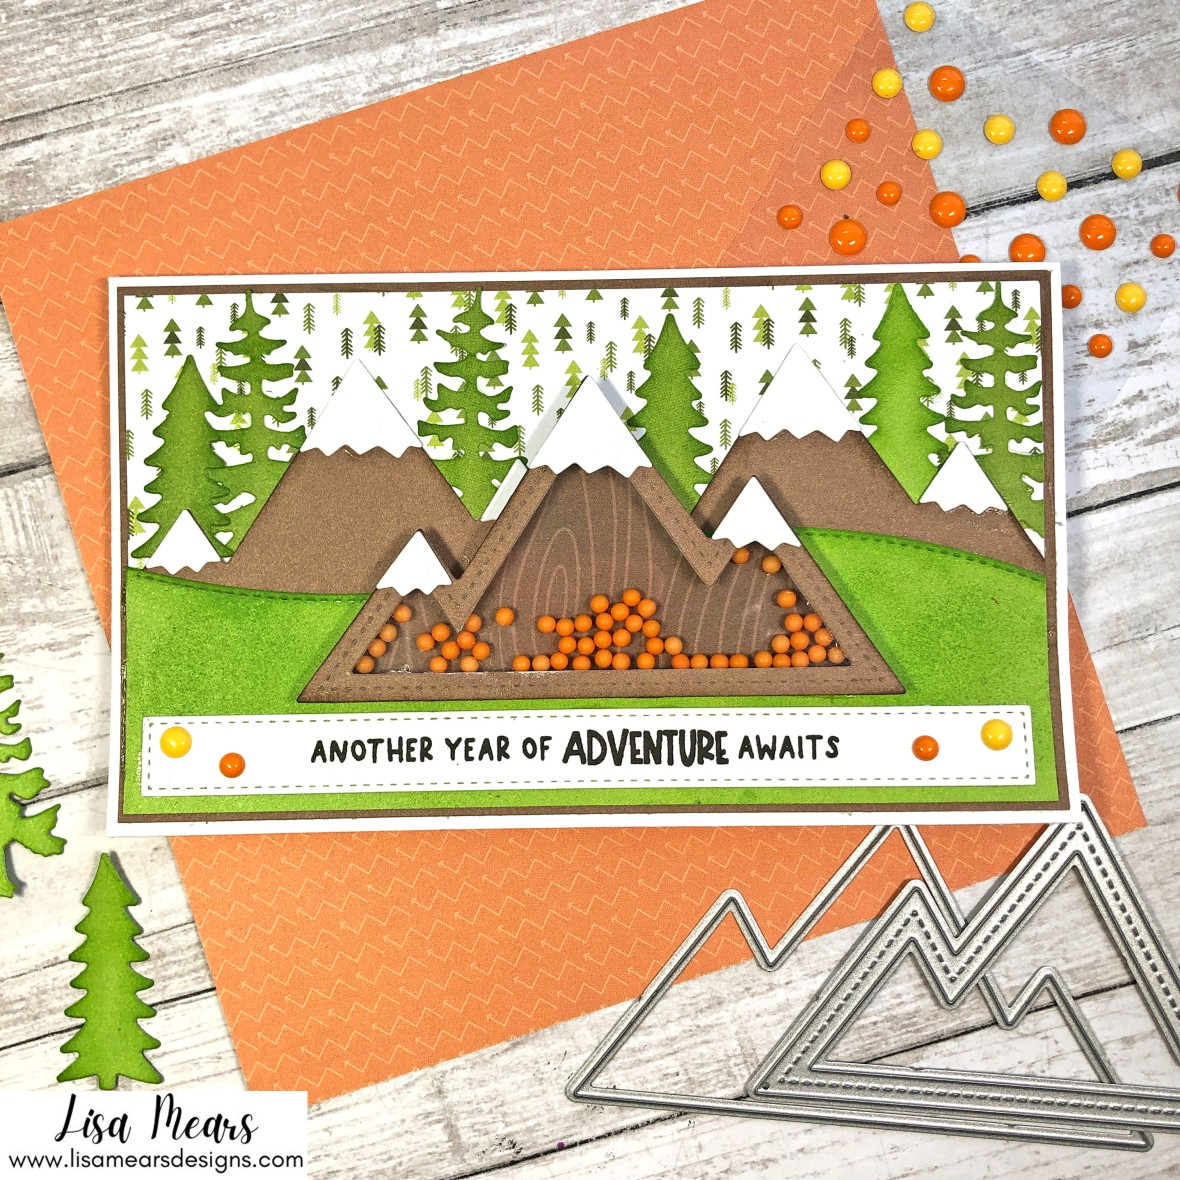 Queen & Co | Great Outdoors Shaker Kit | 10 Cards 1 Kit